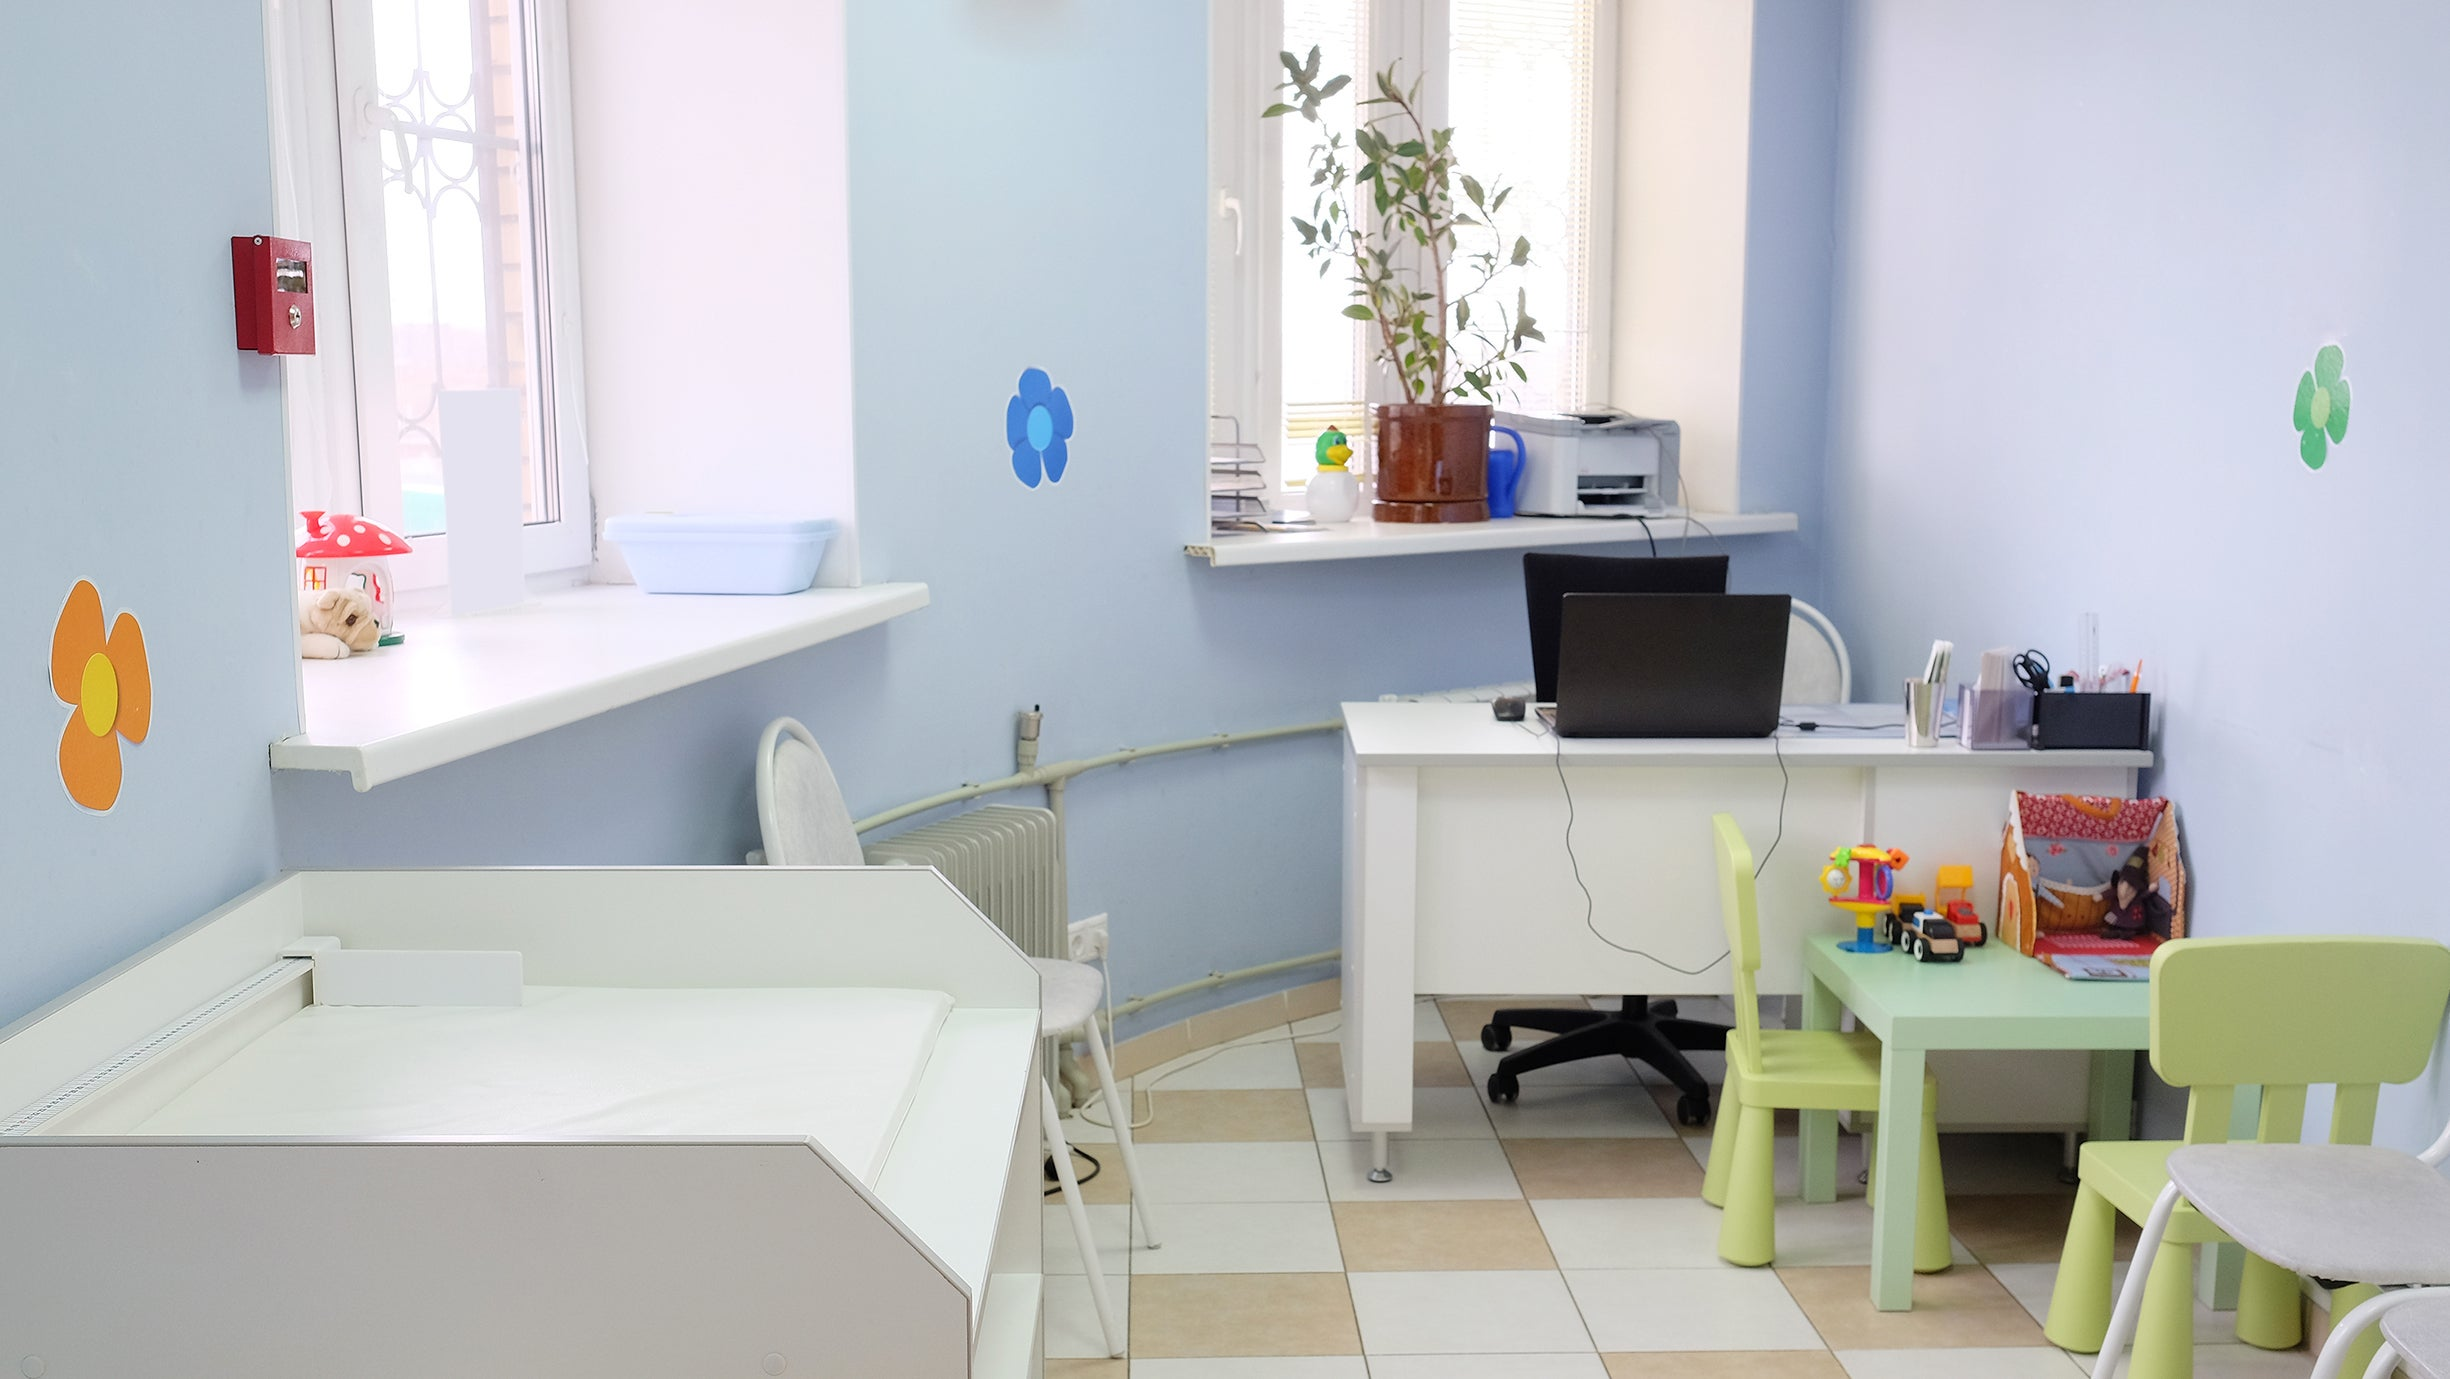 Bring Your Own Toys To The Paediatrician's Office